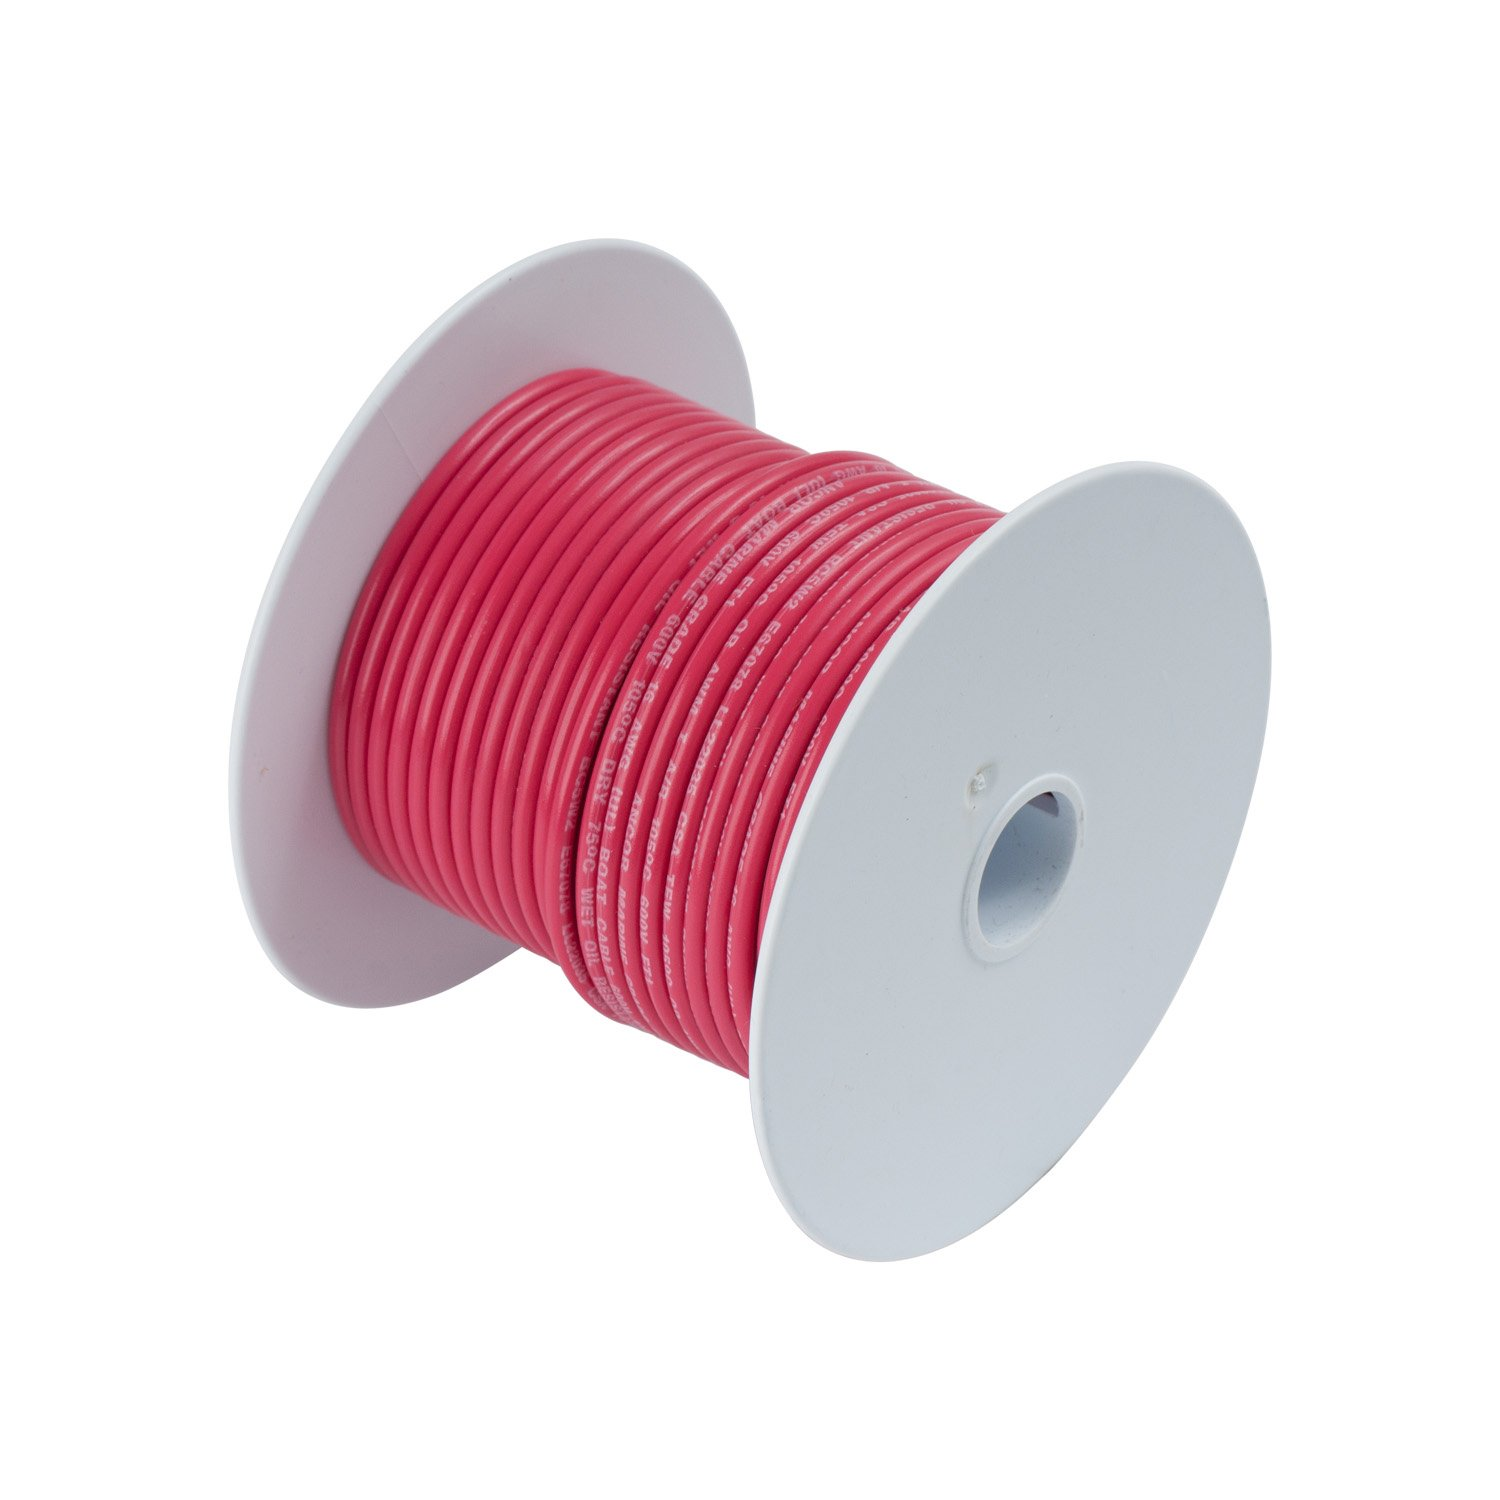 Calterm 52185 Primary Wire 100' 18 AWG, Red